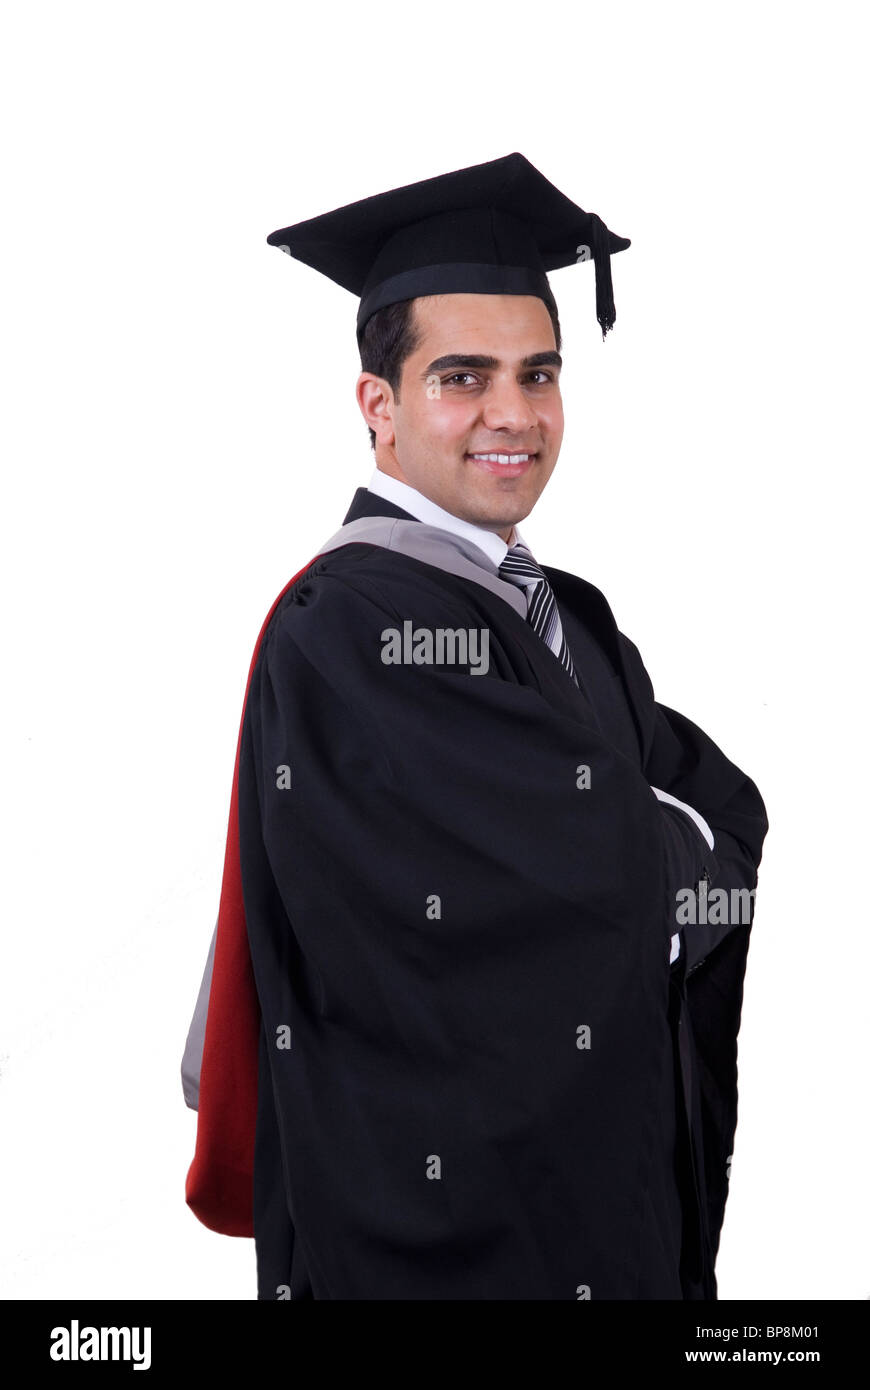 Proud university student wearing cap and gown arms folded standing against a white background - Stock Image